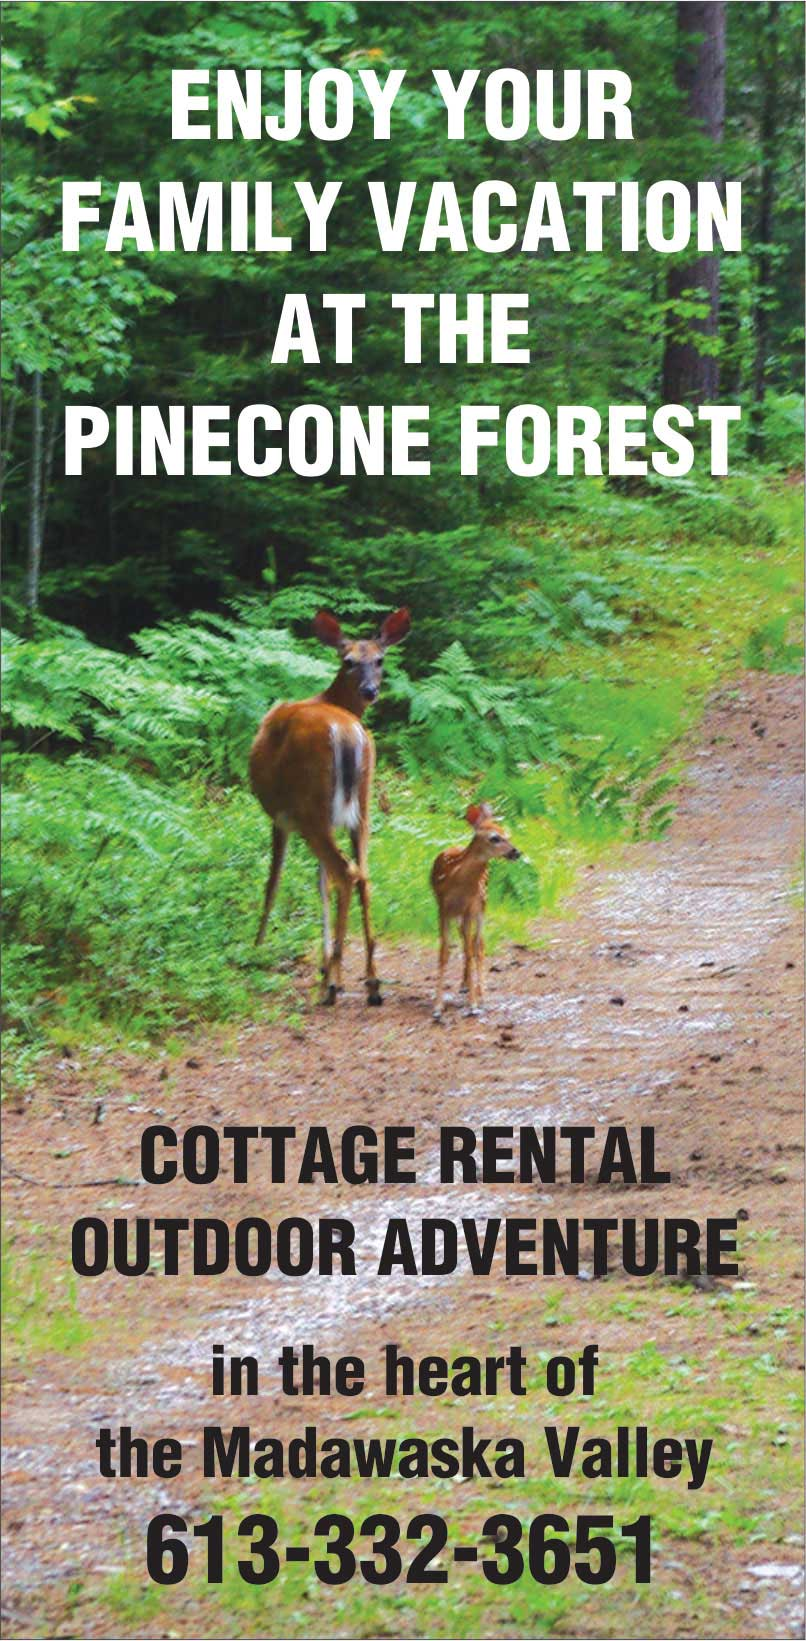 The Pinecone Forest Cottage Rental and Adventures